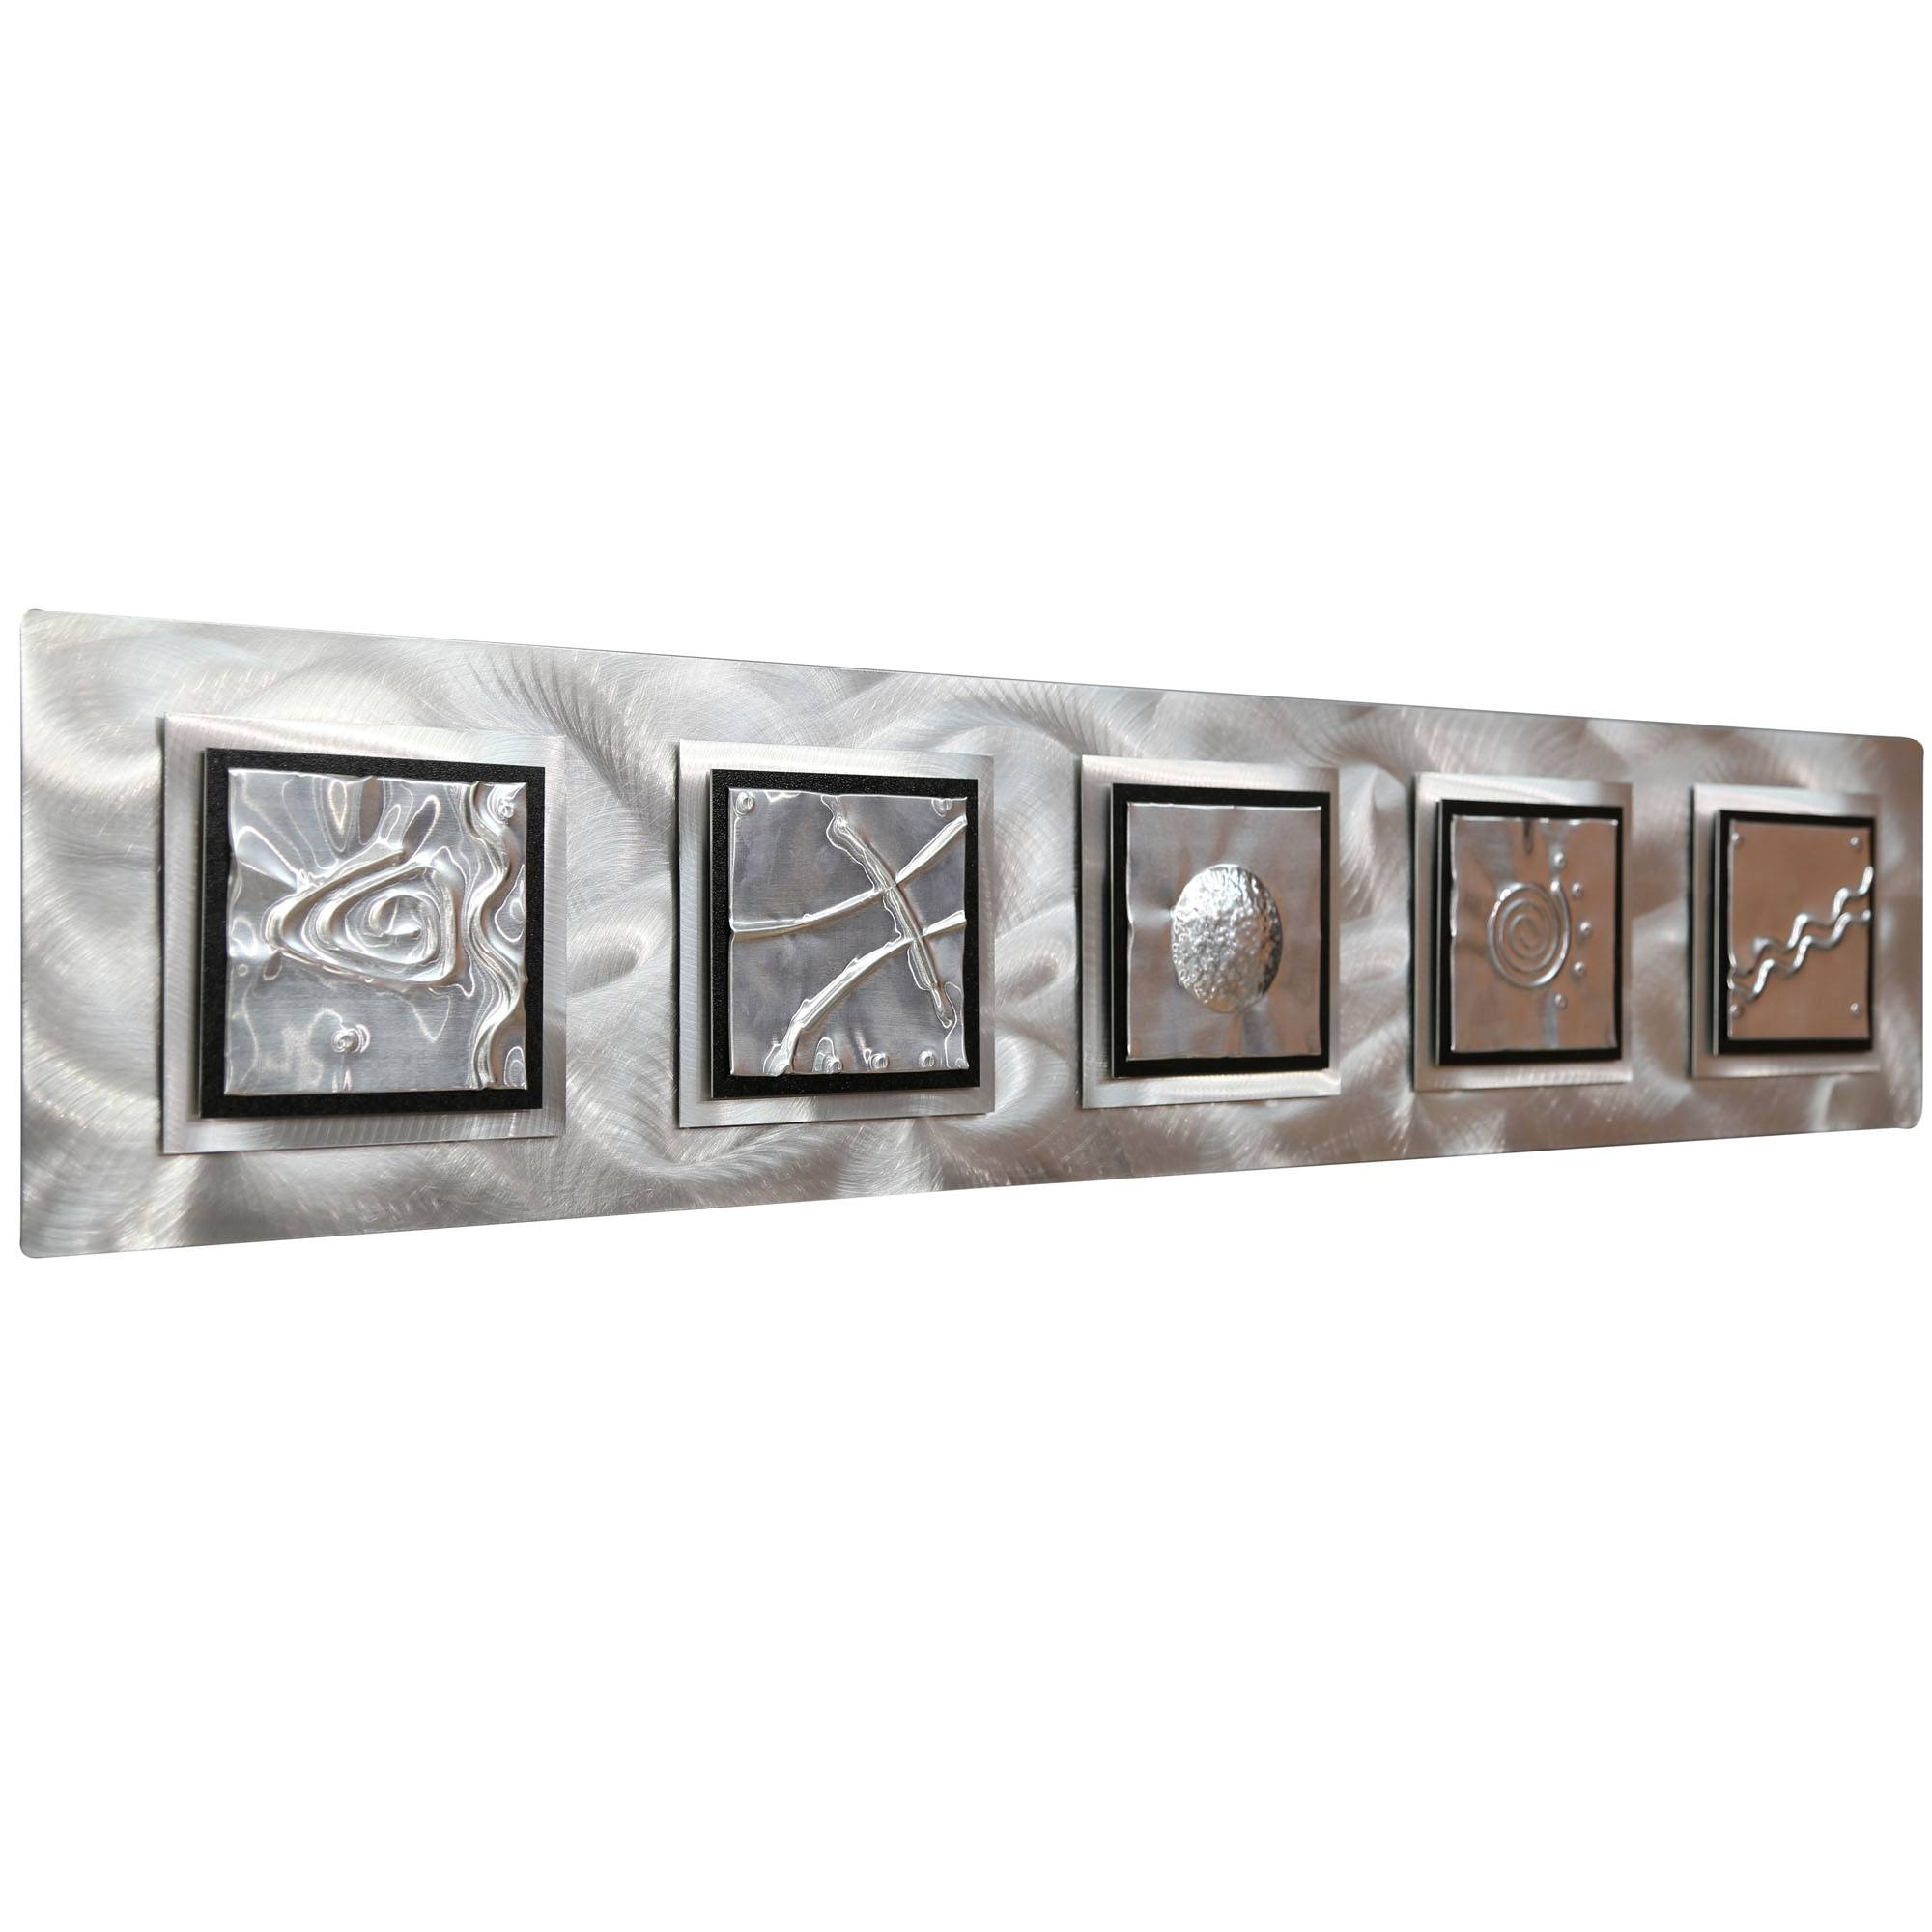 5 Elements – Silver/black Zen Metal Wall Art Accentjon Allen Regarding Most Recent Rectangular Metal Wall Art (View 1 of 20)